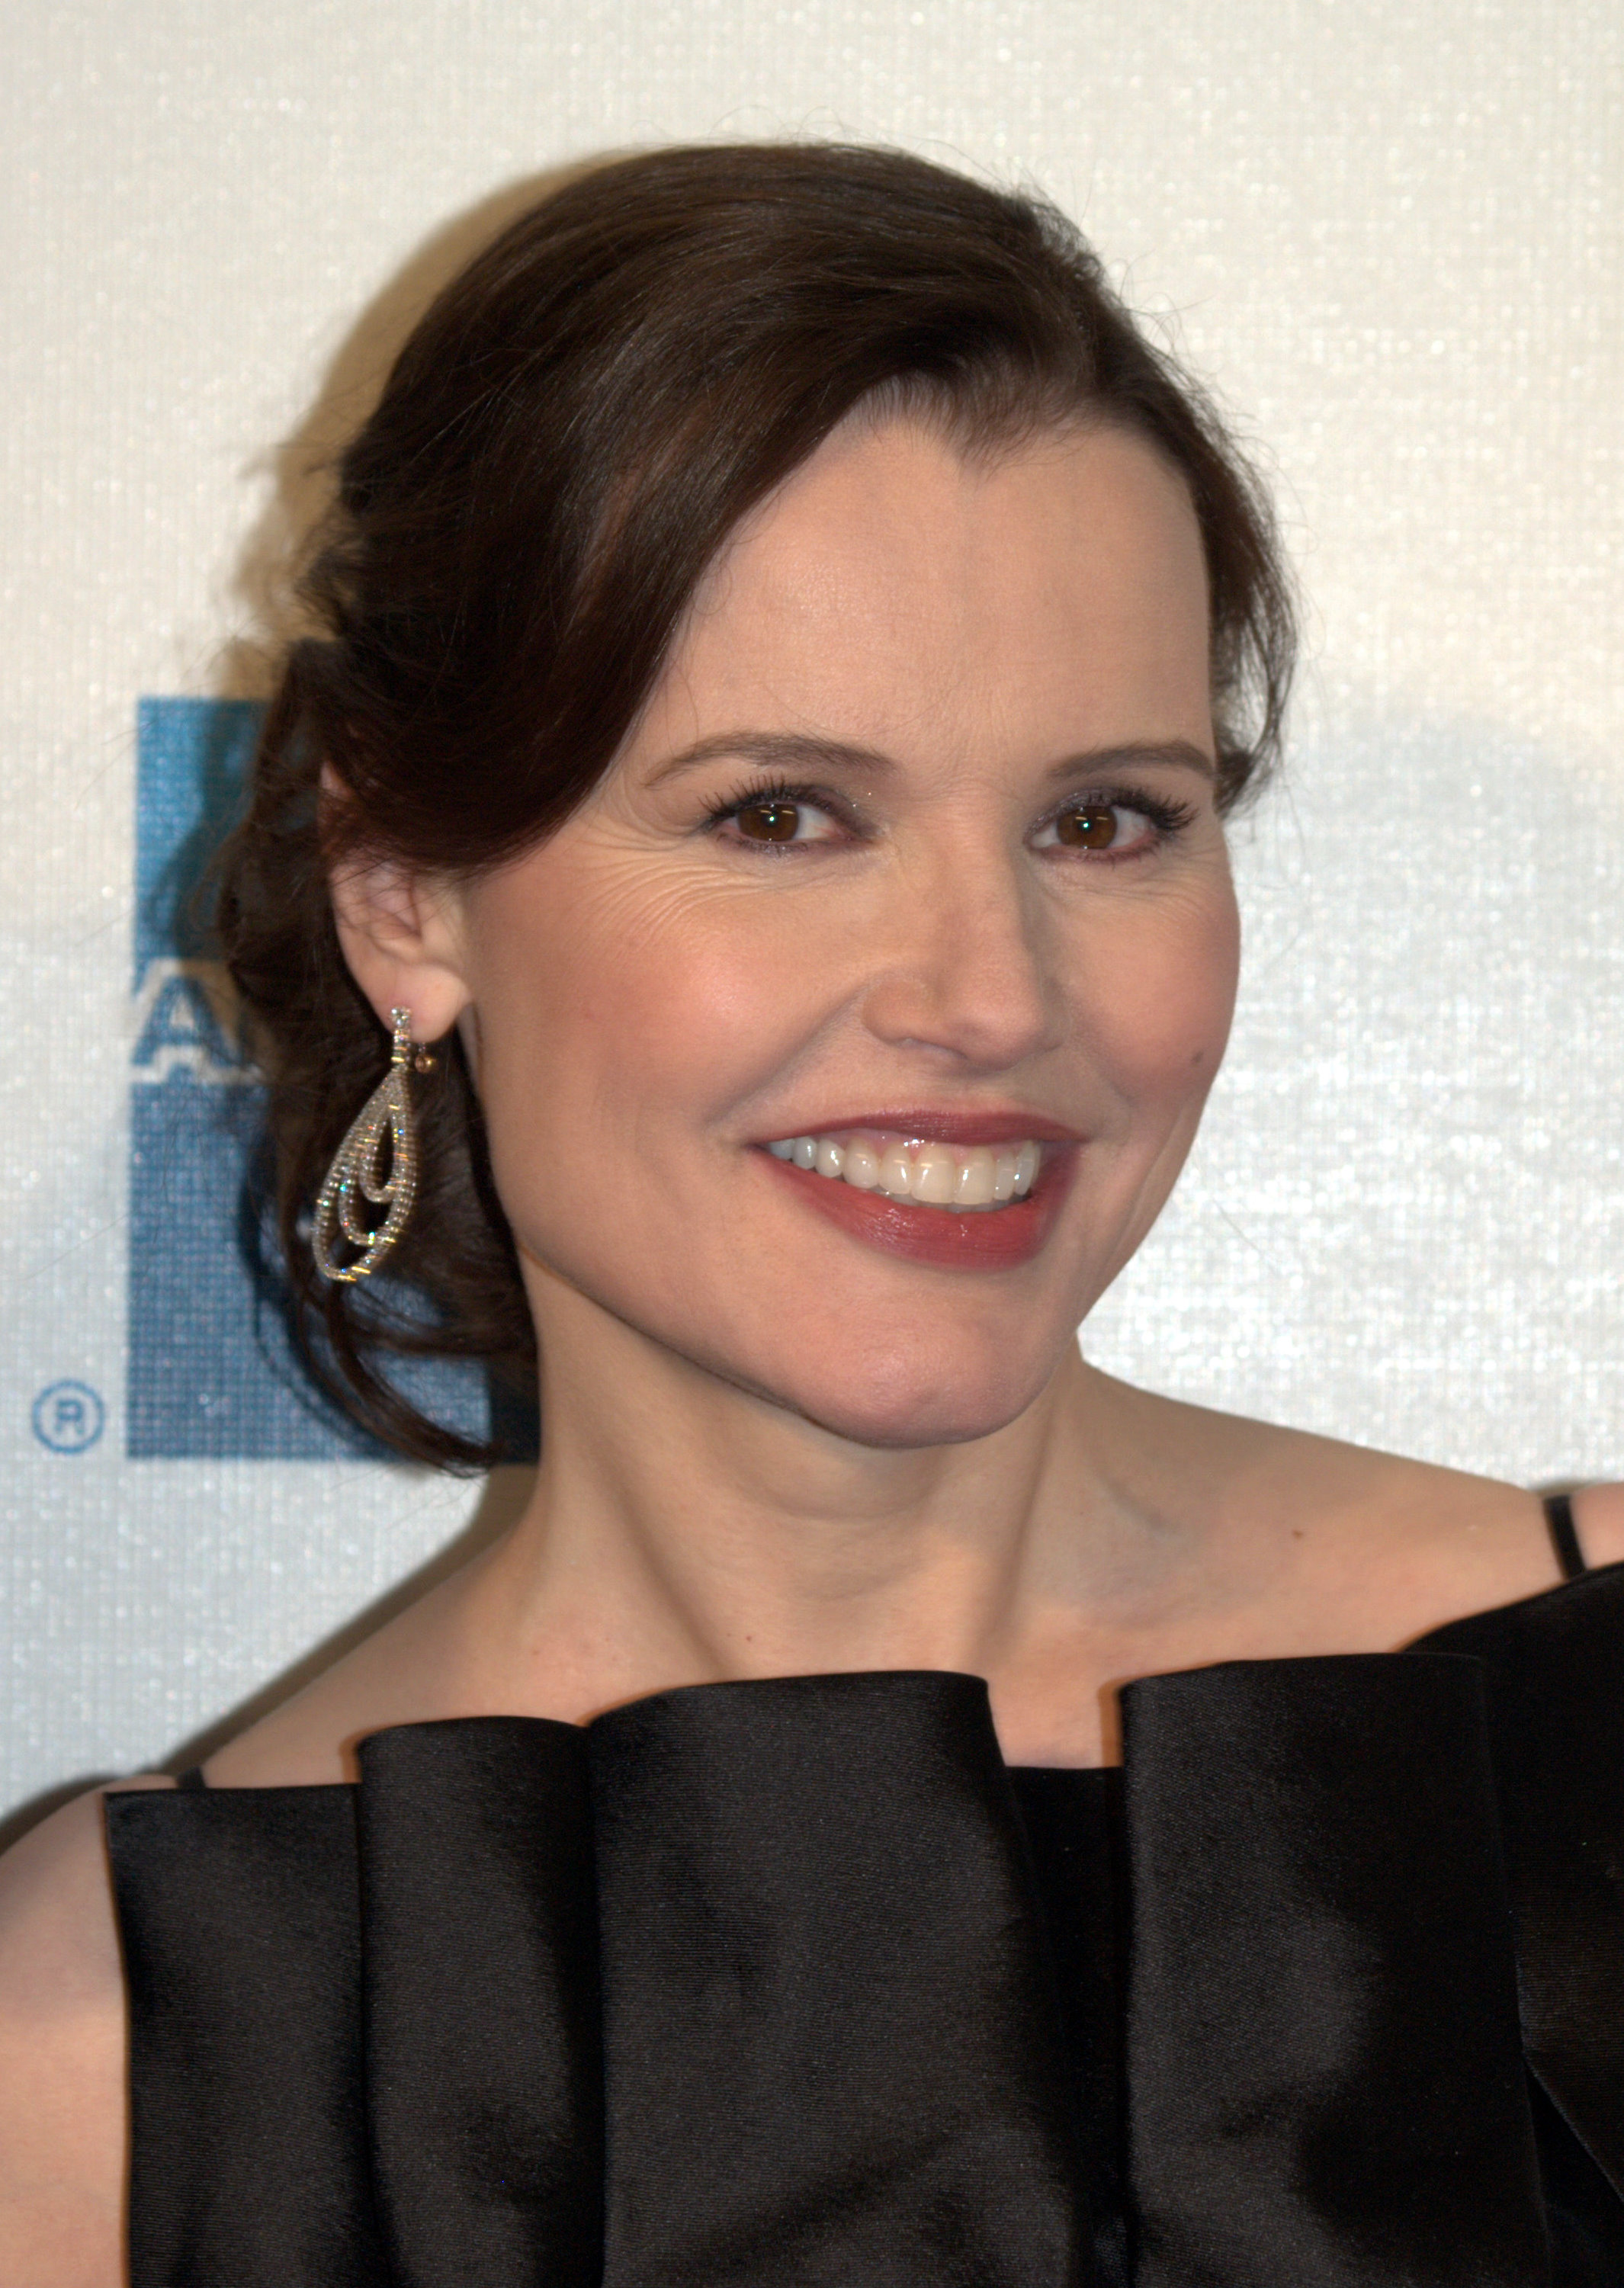 Description Geena Davis at the 2009 Tribeca Film Festival.jpg